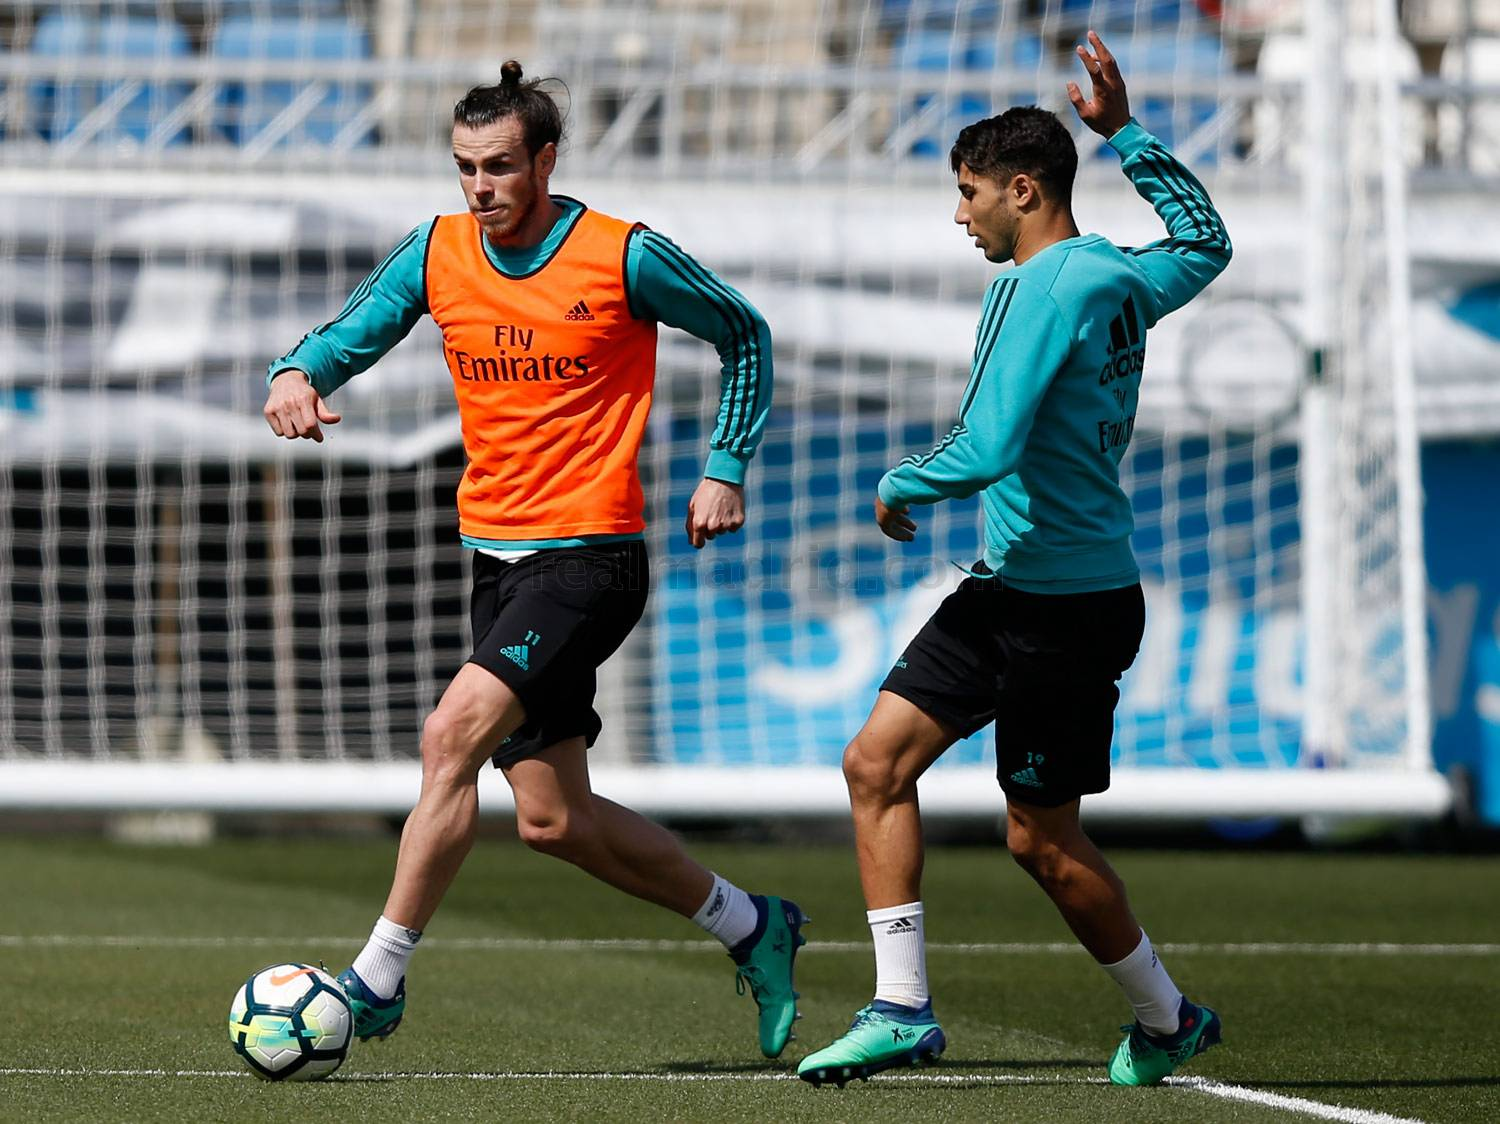 Real Madrid - Entrenamiento del Real Madrid - 05-04-2018